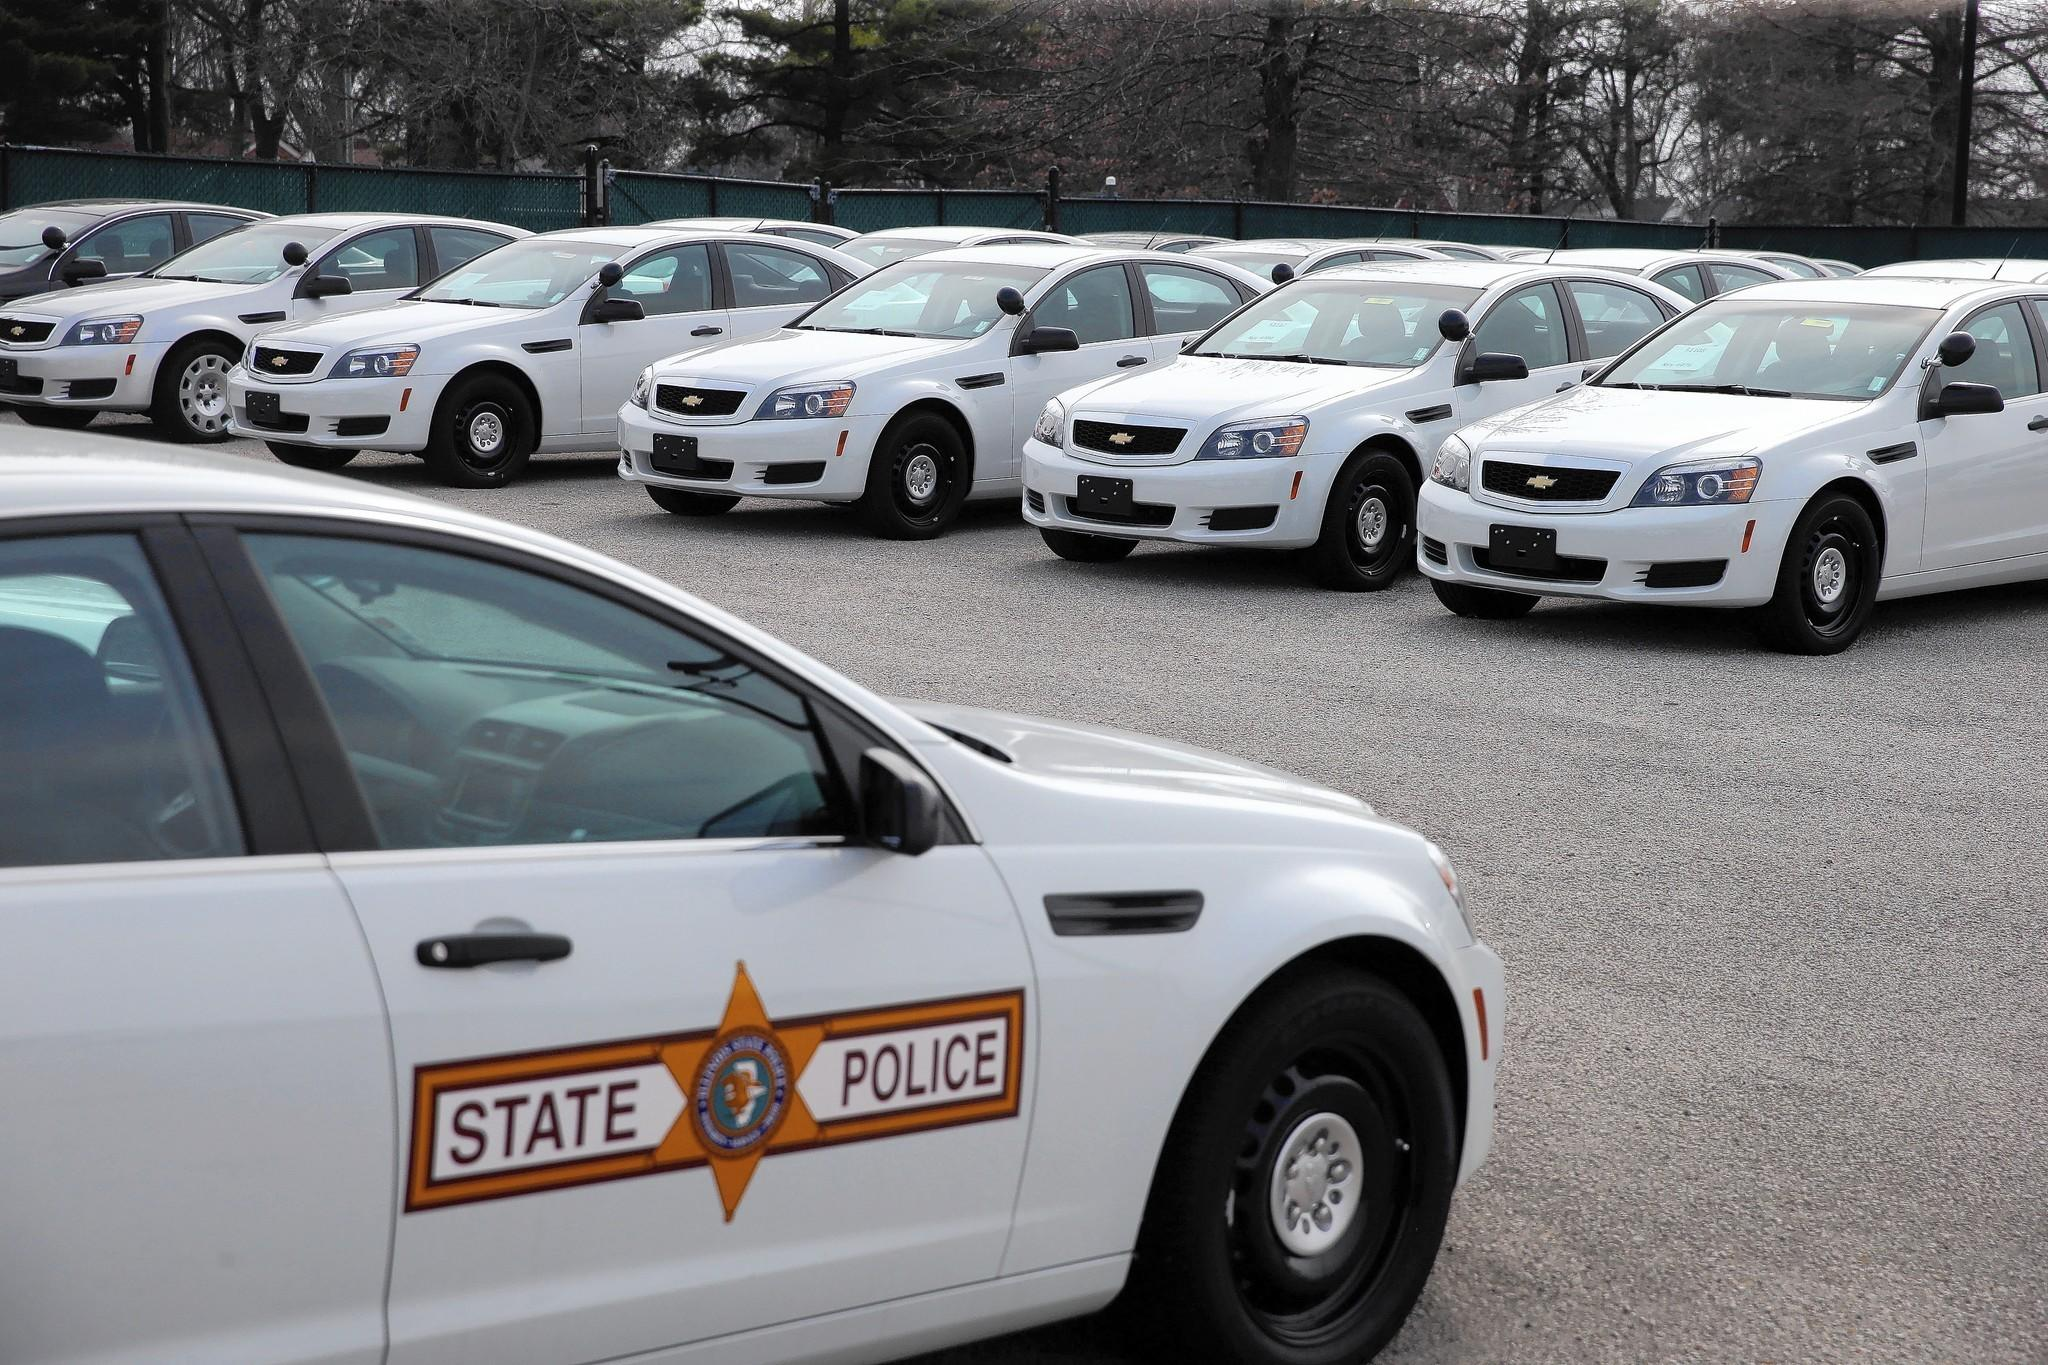 A parking lot at the Illinois State Fairgrounds in Springfield is full of new, but unused, state police squad cars.